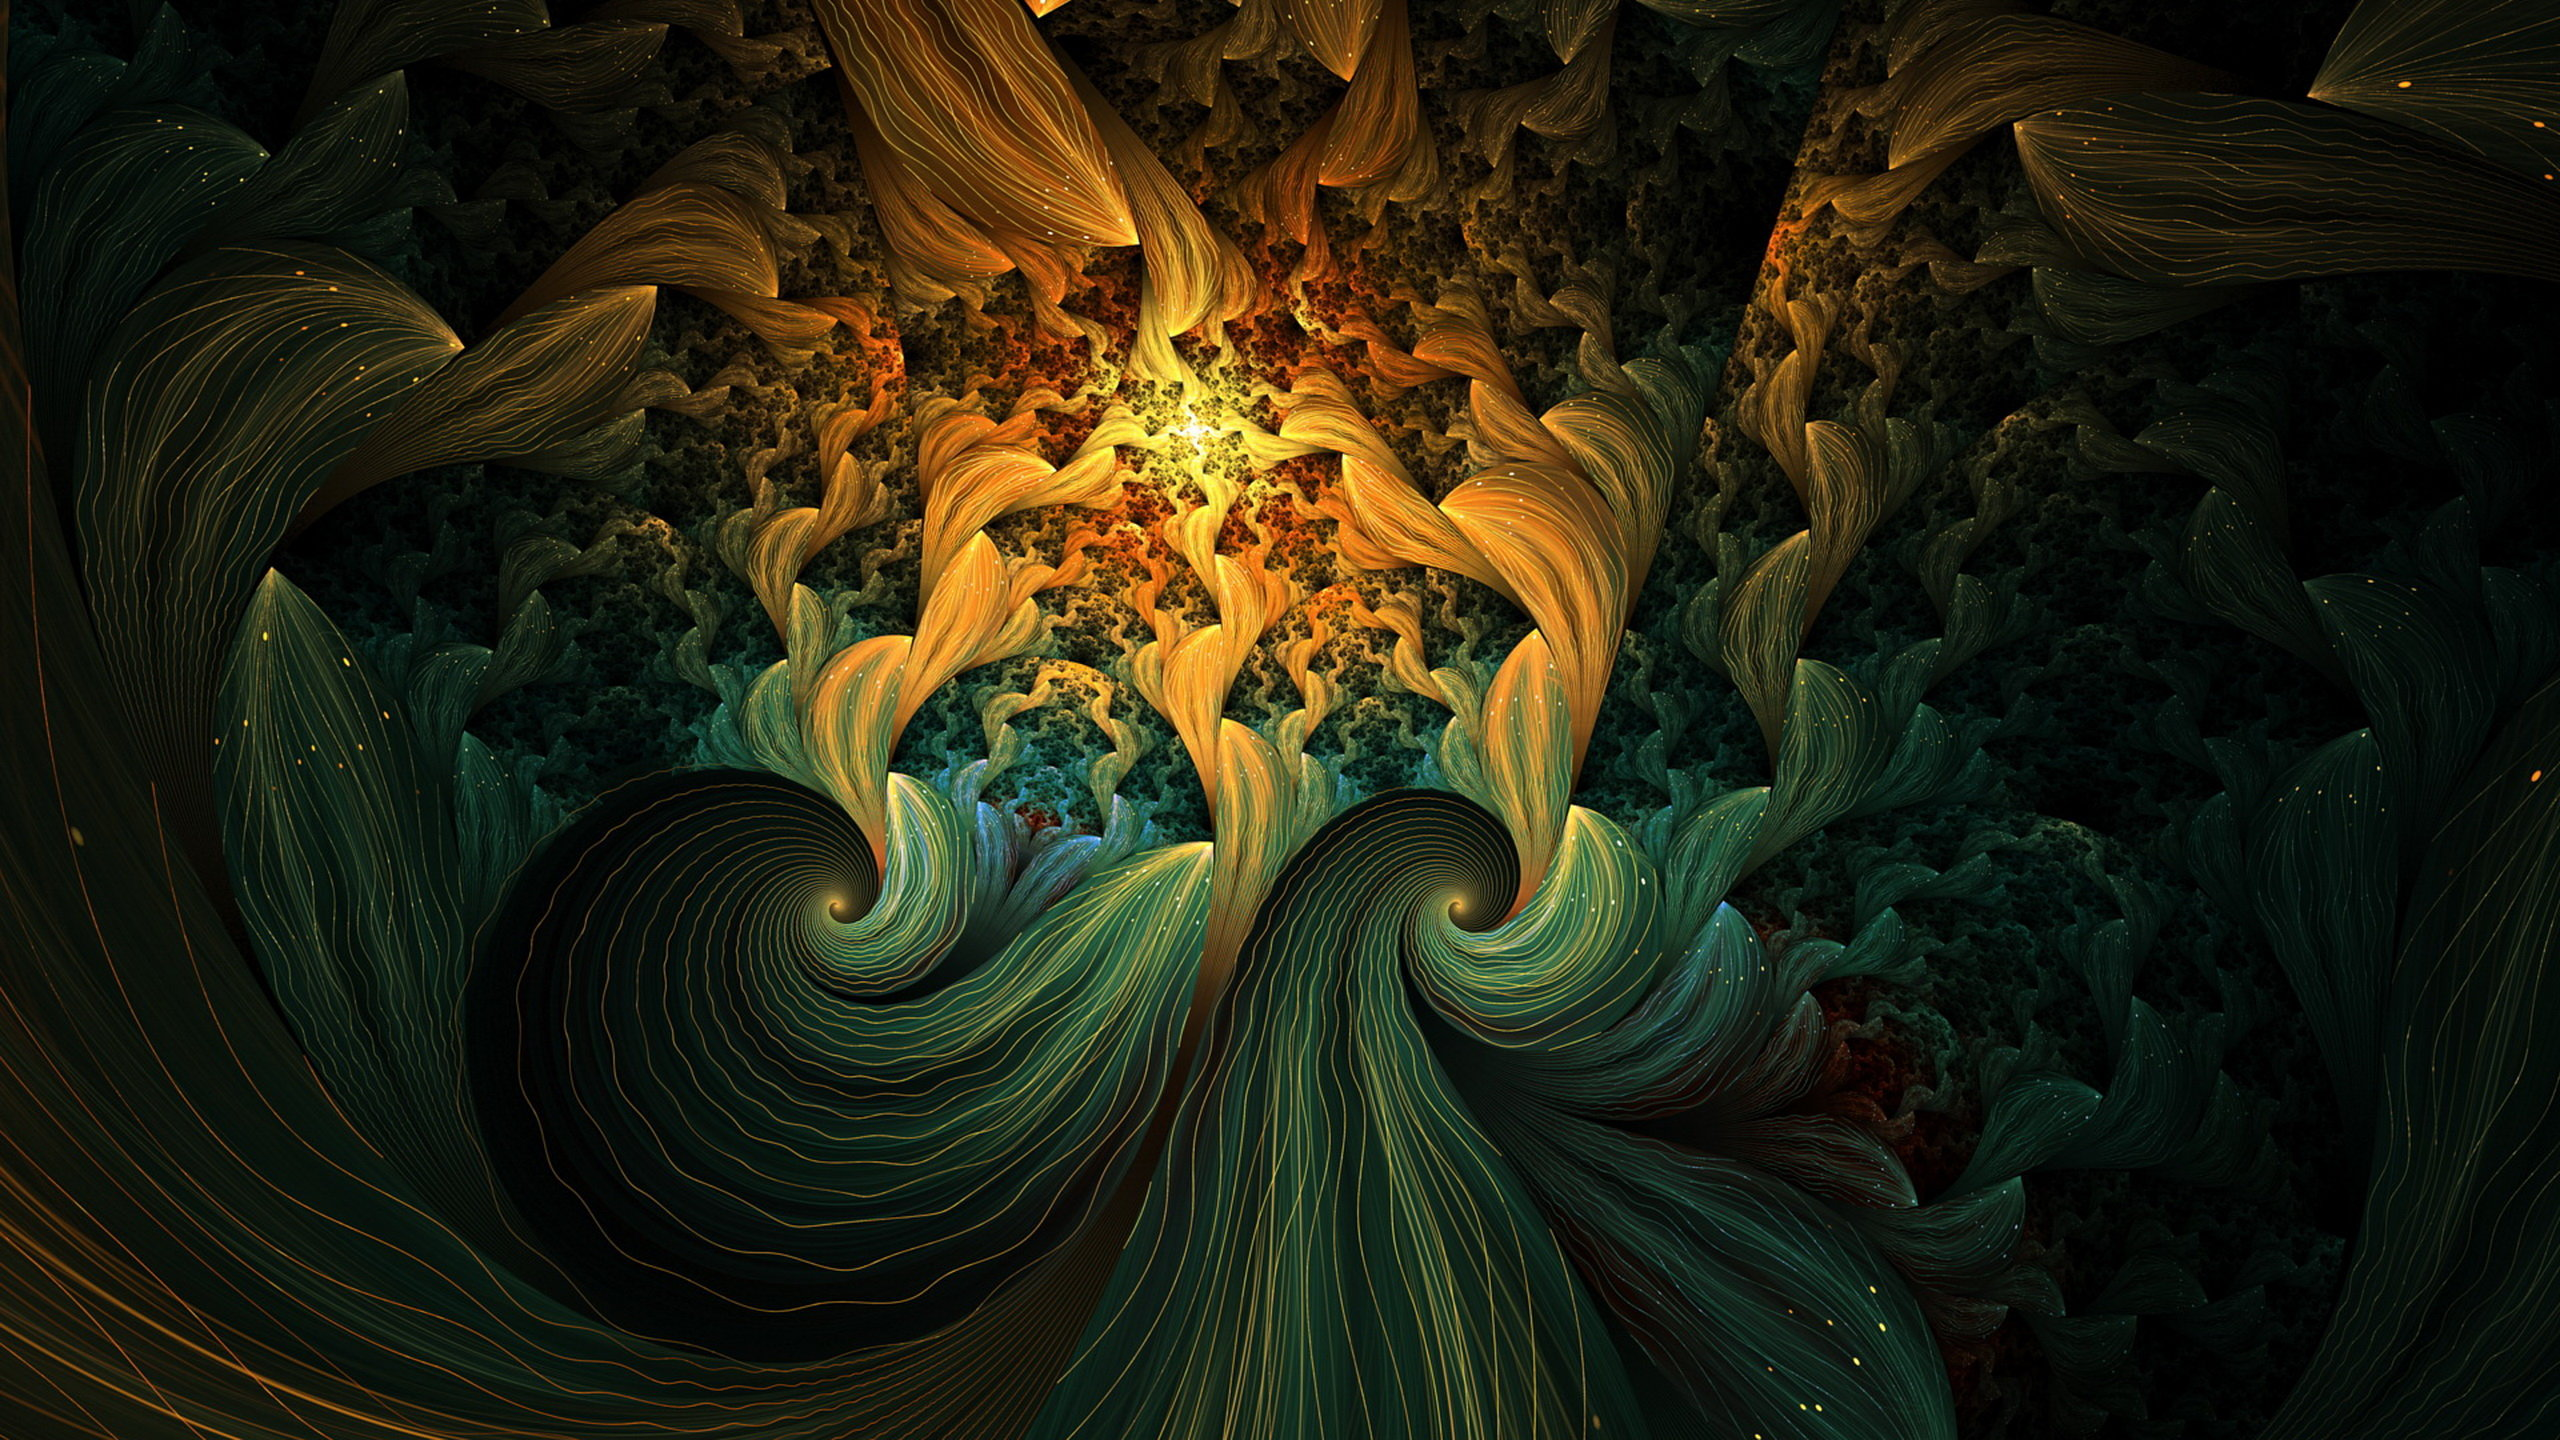 Free download Fractal wallpaper ID:93627 hd 2560x1440 for PC